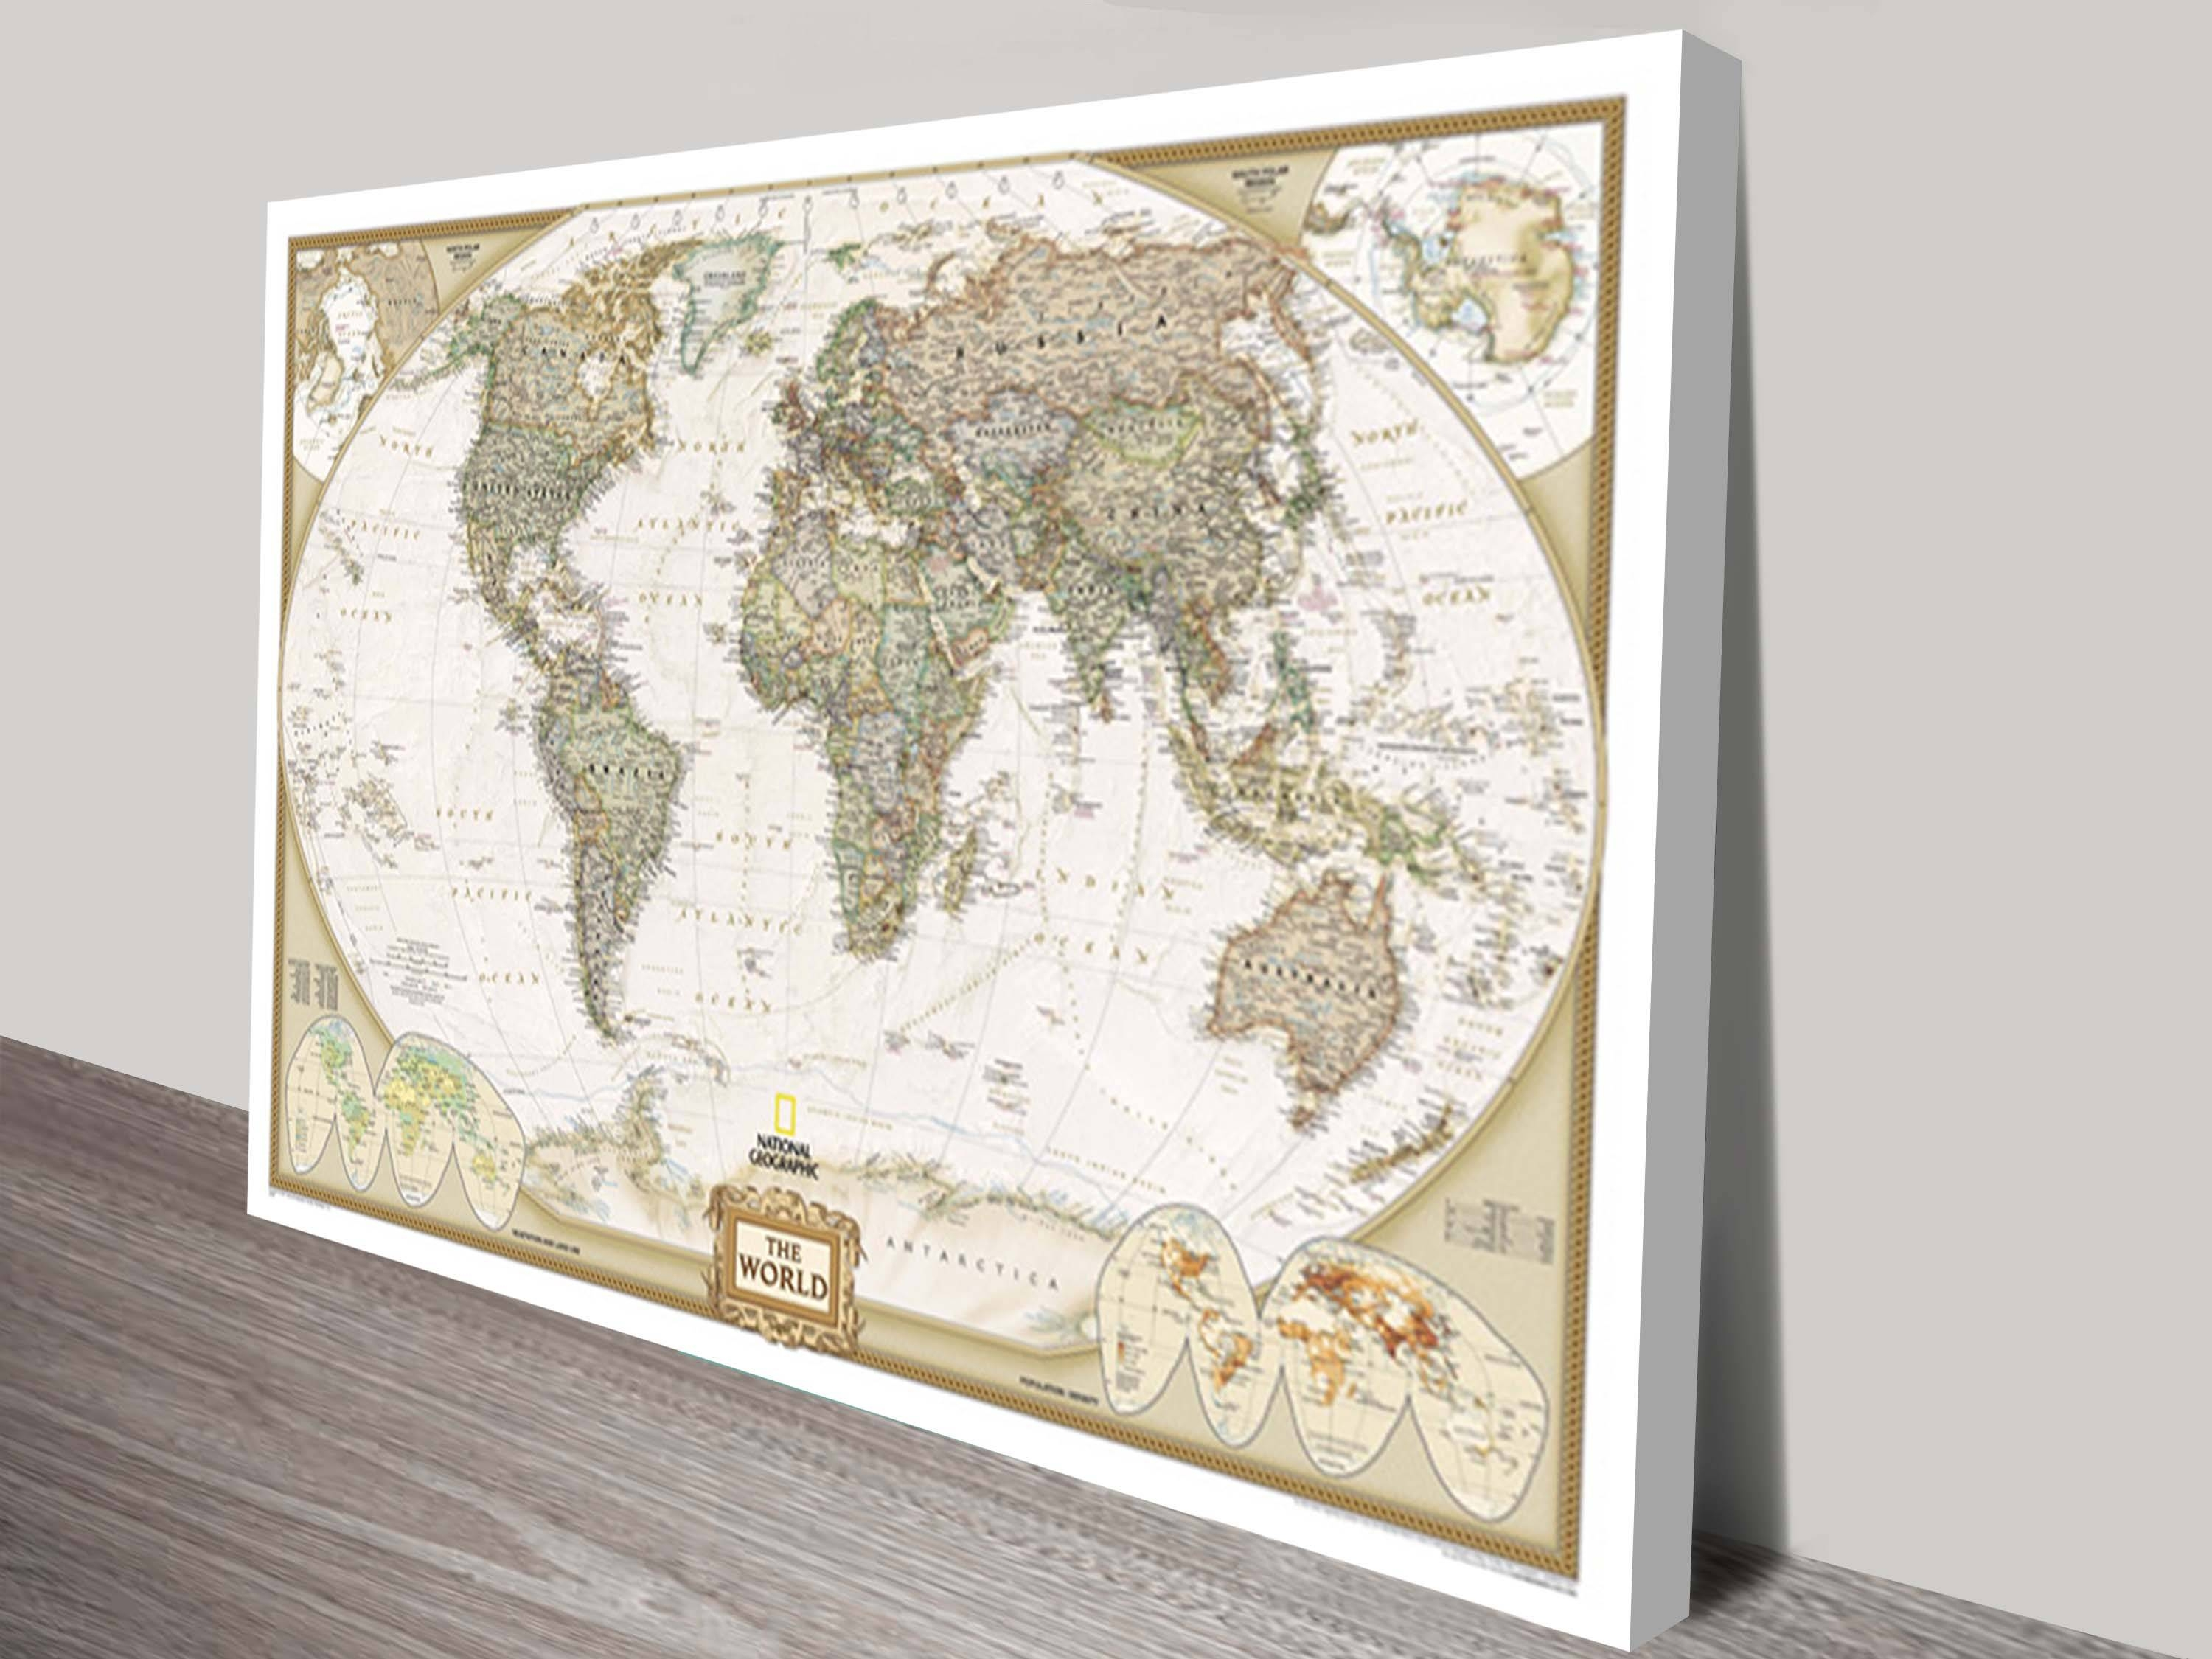 World Map Canvas Wall Art | Framed Maps Sydney With Newest World Map Wall Art Canvas (View 16 of 20)